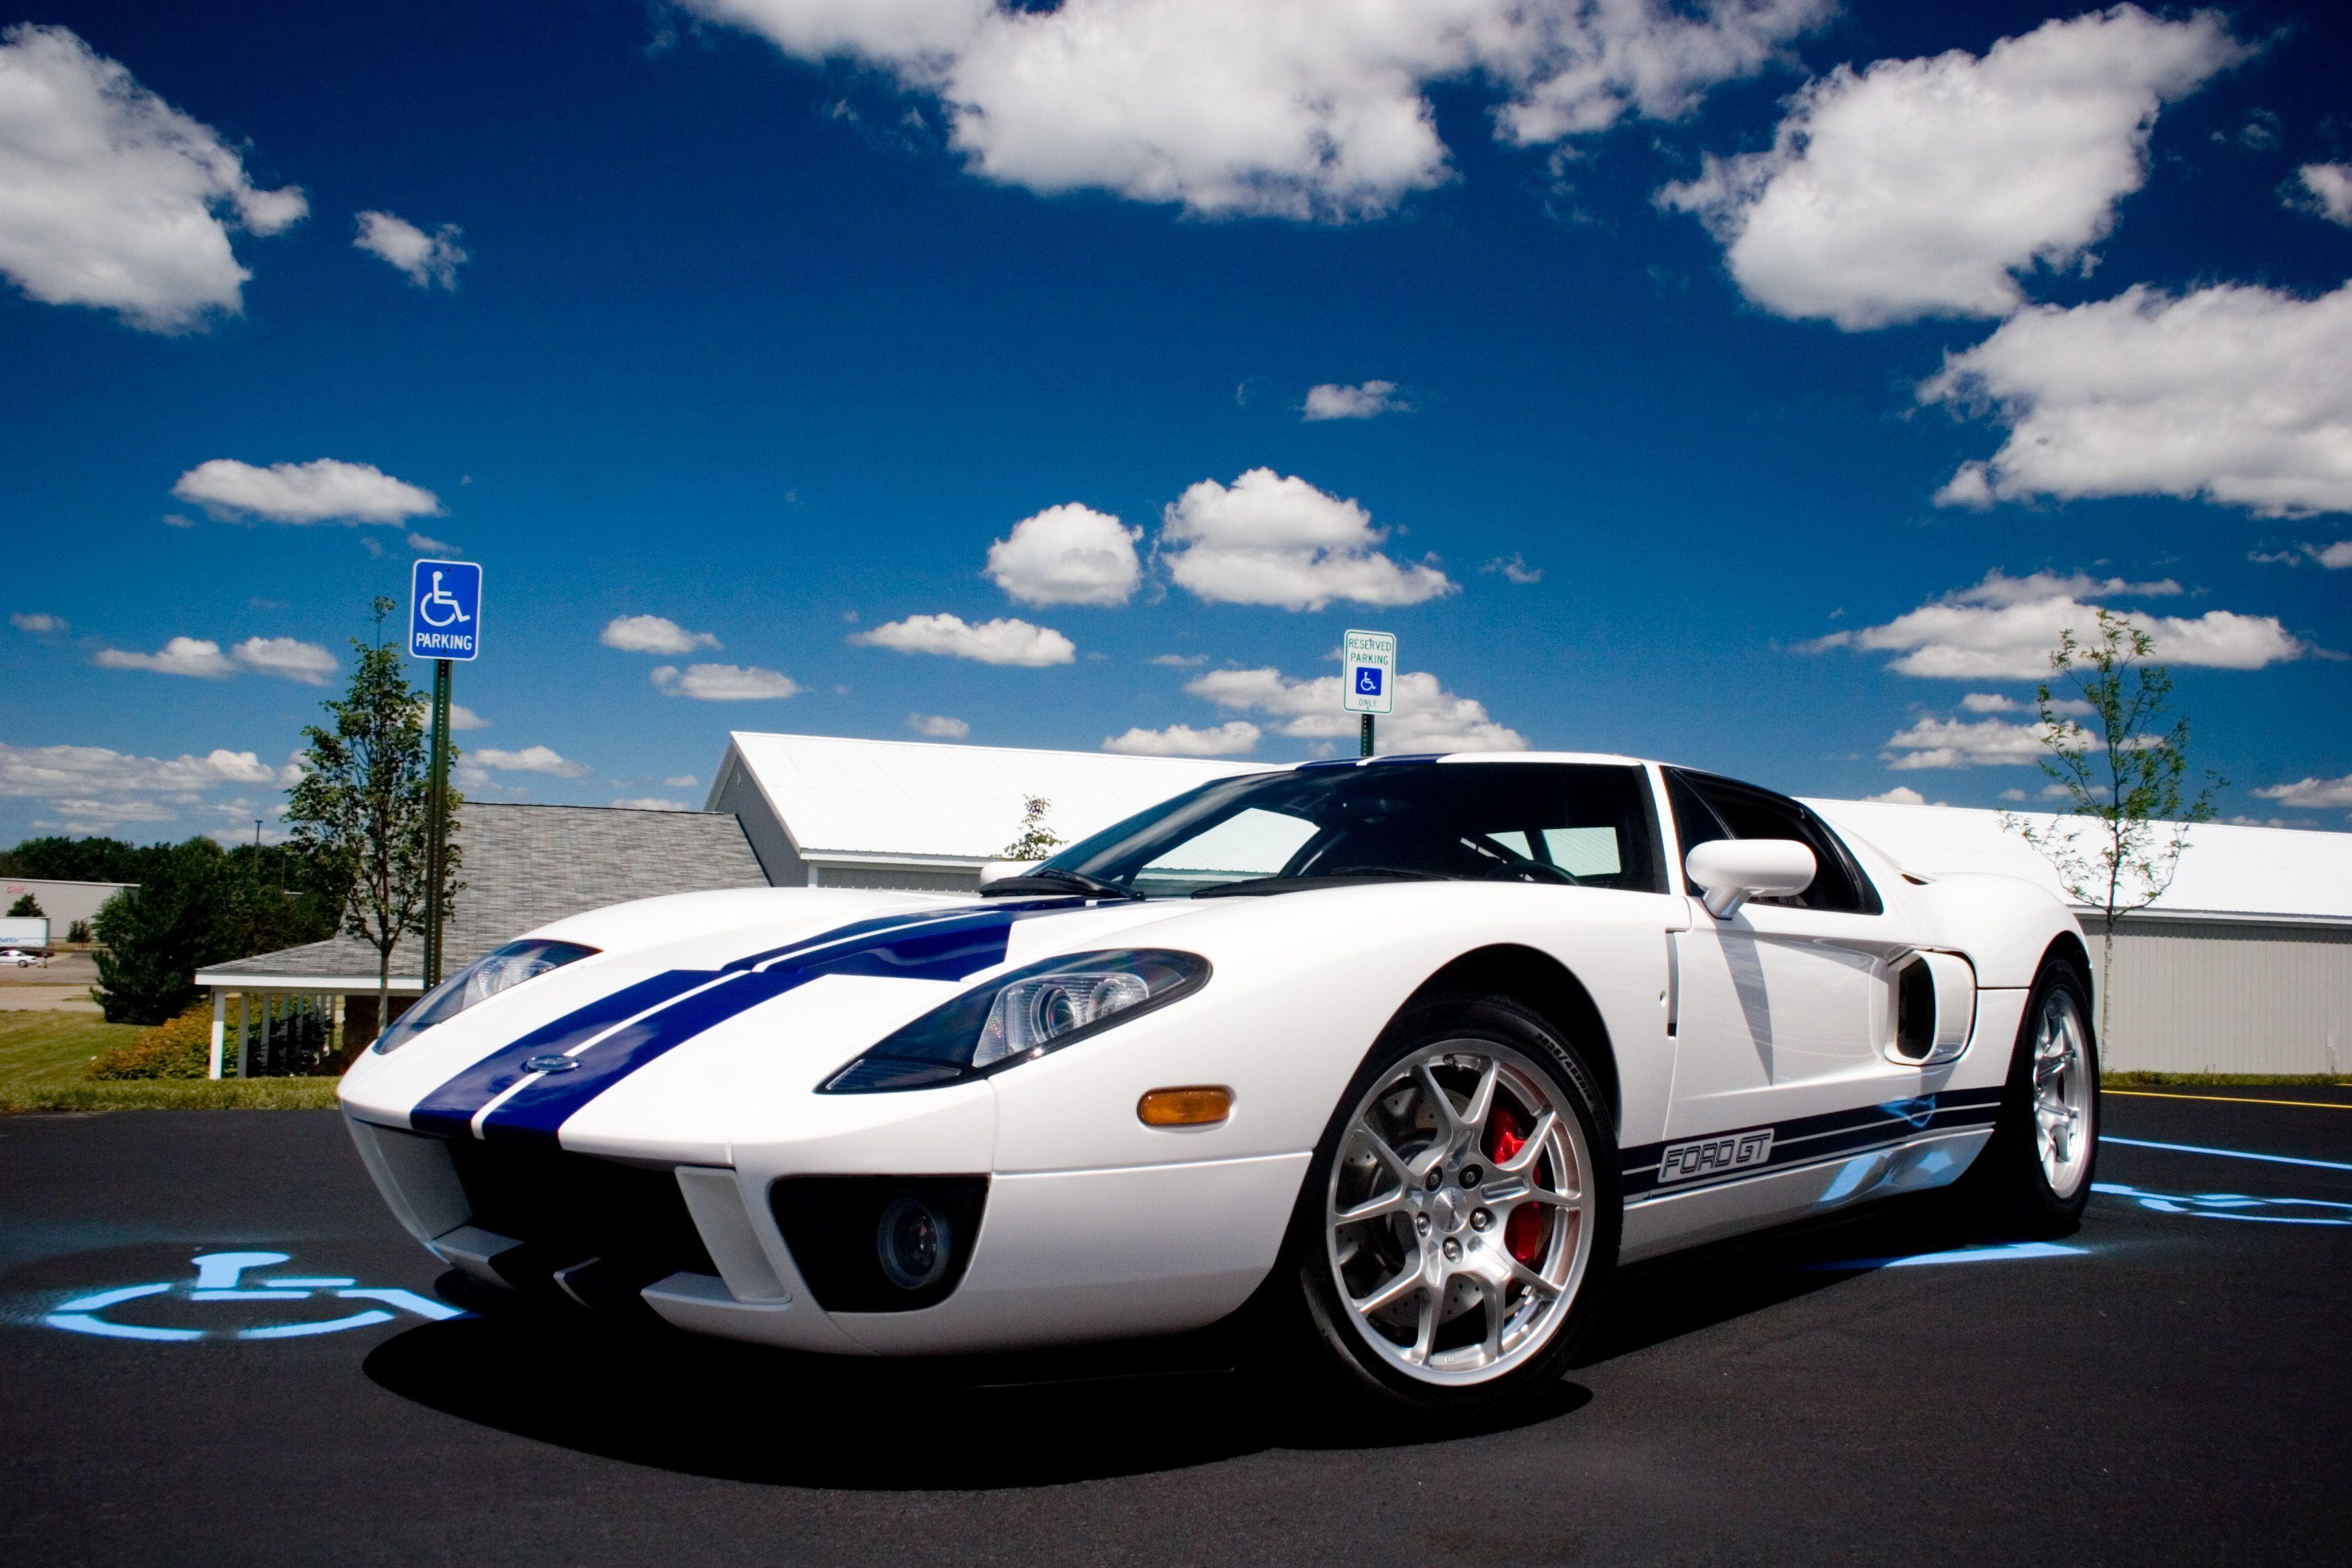 Ford Gt Wallpaper iPhone - image #41